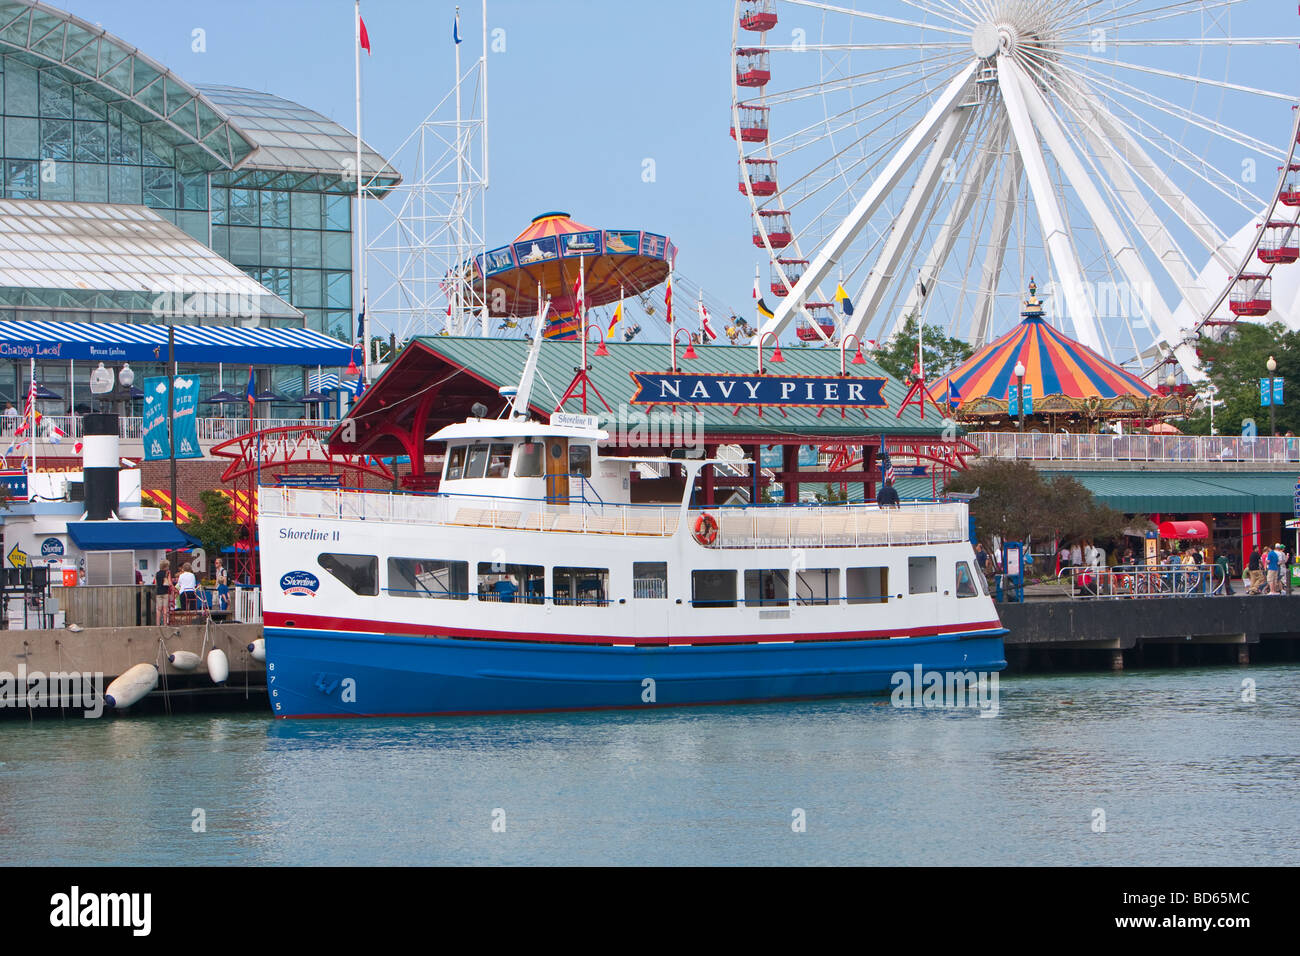 Chicago Illinois Navy Pier Tourist Boat And Ferris Wheel Stock - Chicago map navy pier